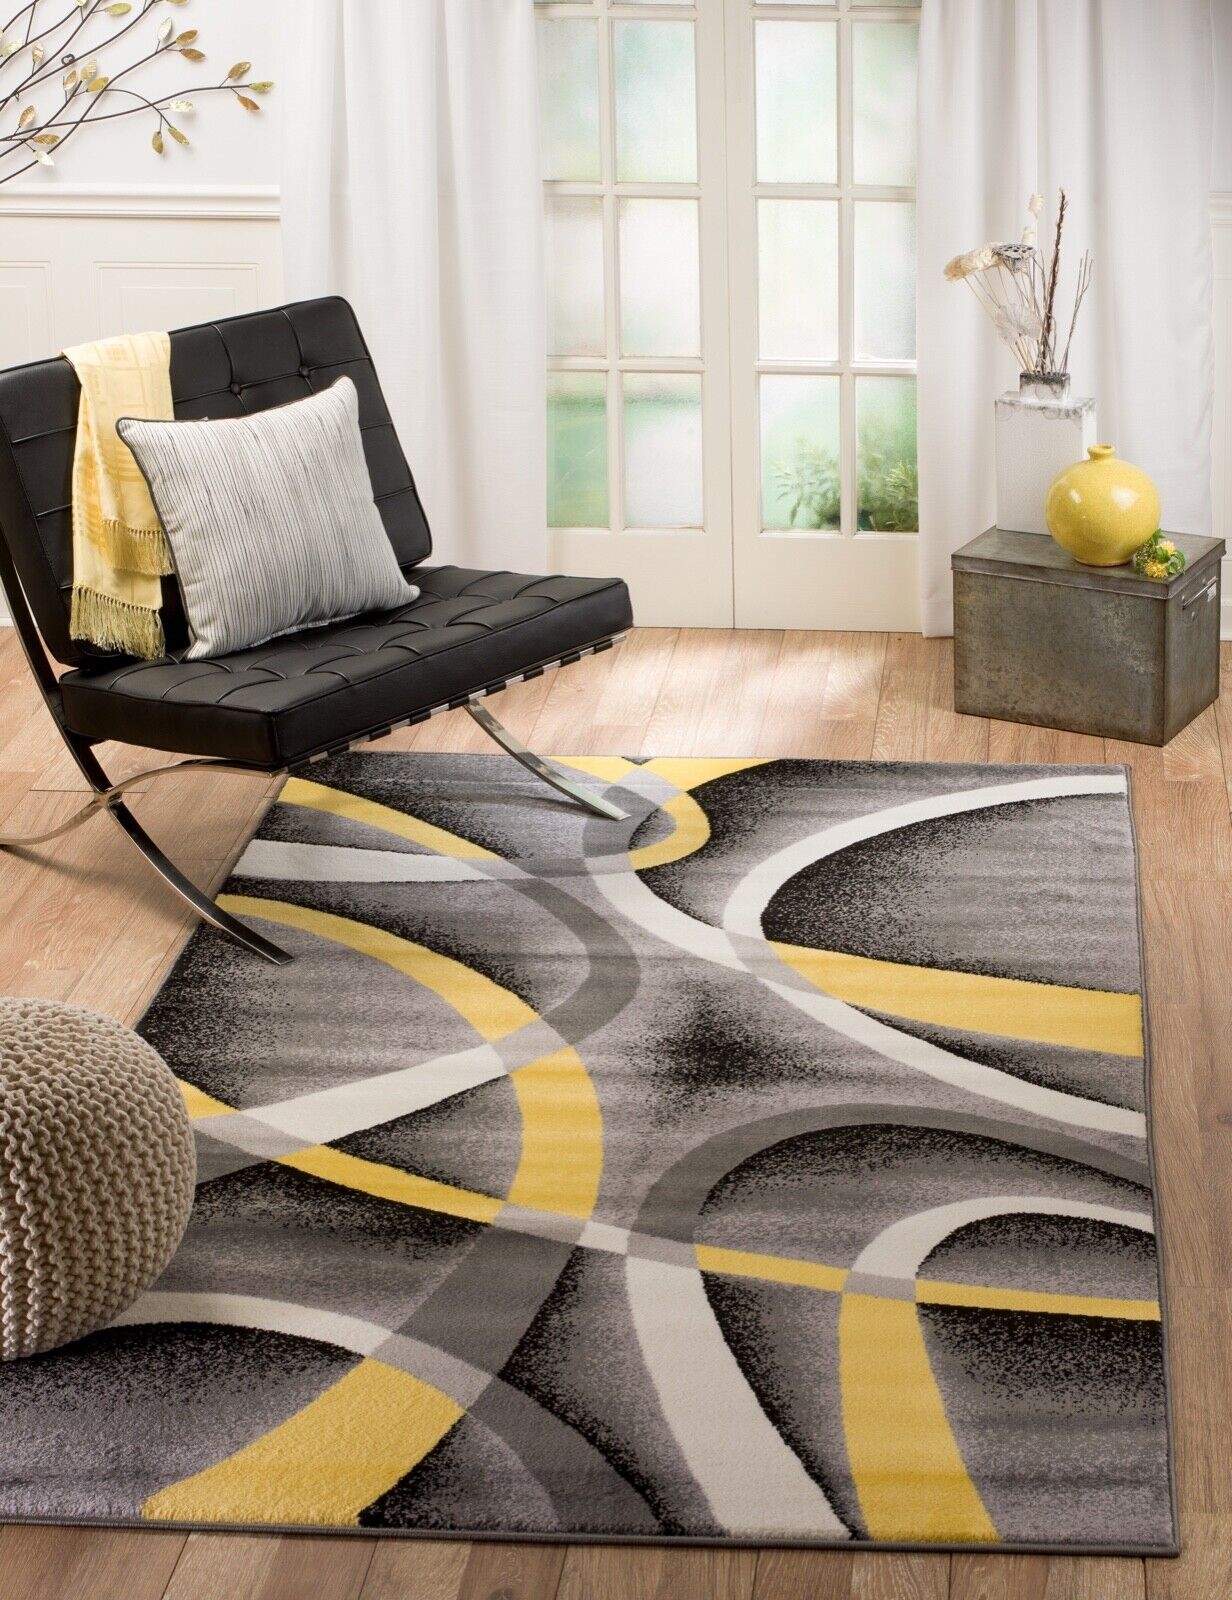 Area rug Smt#21 Modern yellow gray  soft pile size options 2